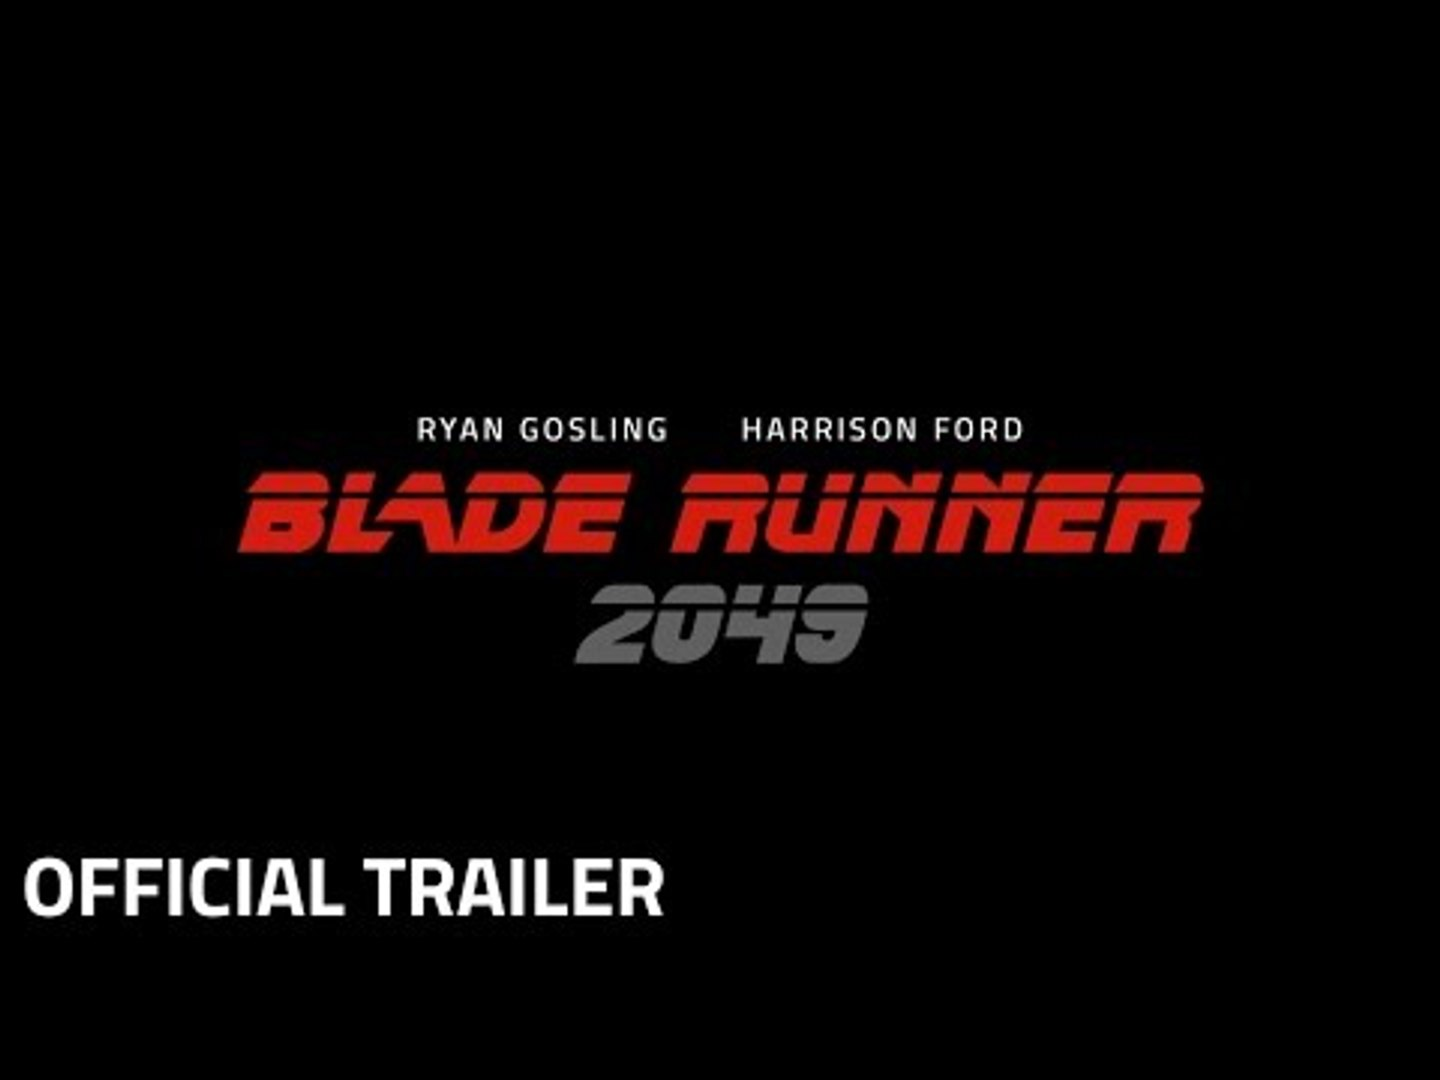 Blade Runner 2049  - Announcement Piece - Starring Ryan Gosling & Harrison Ford - October 6 2017